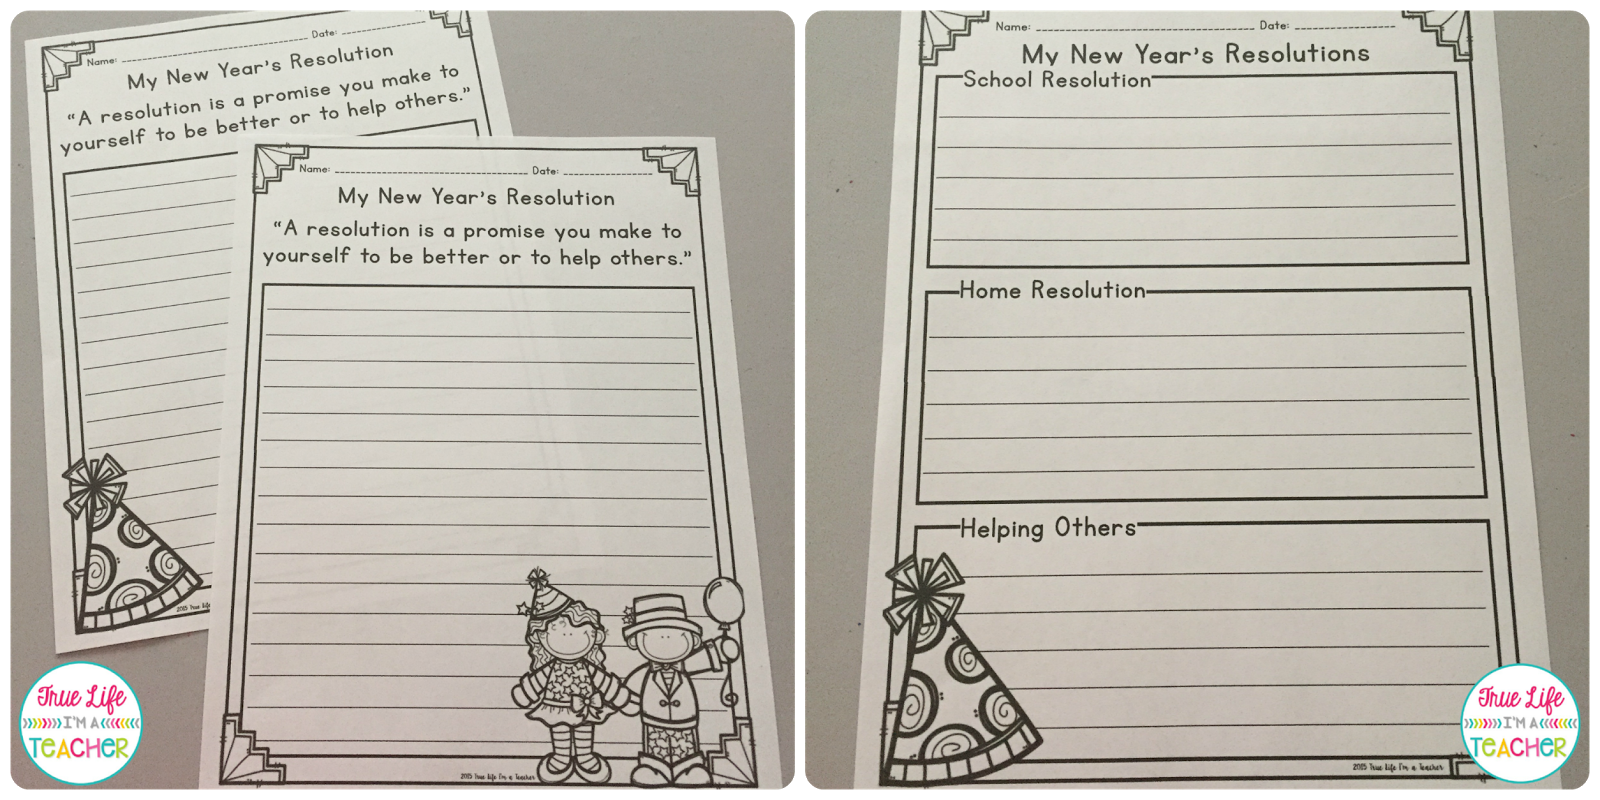 writing resolutions 7 writing resolutions to finish your story this year the start of a new year is a time to plan new chapters, literally and metaphorically here are 7 writing resolutions worth trying if you're serious about reaching all your writing goals this year :.